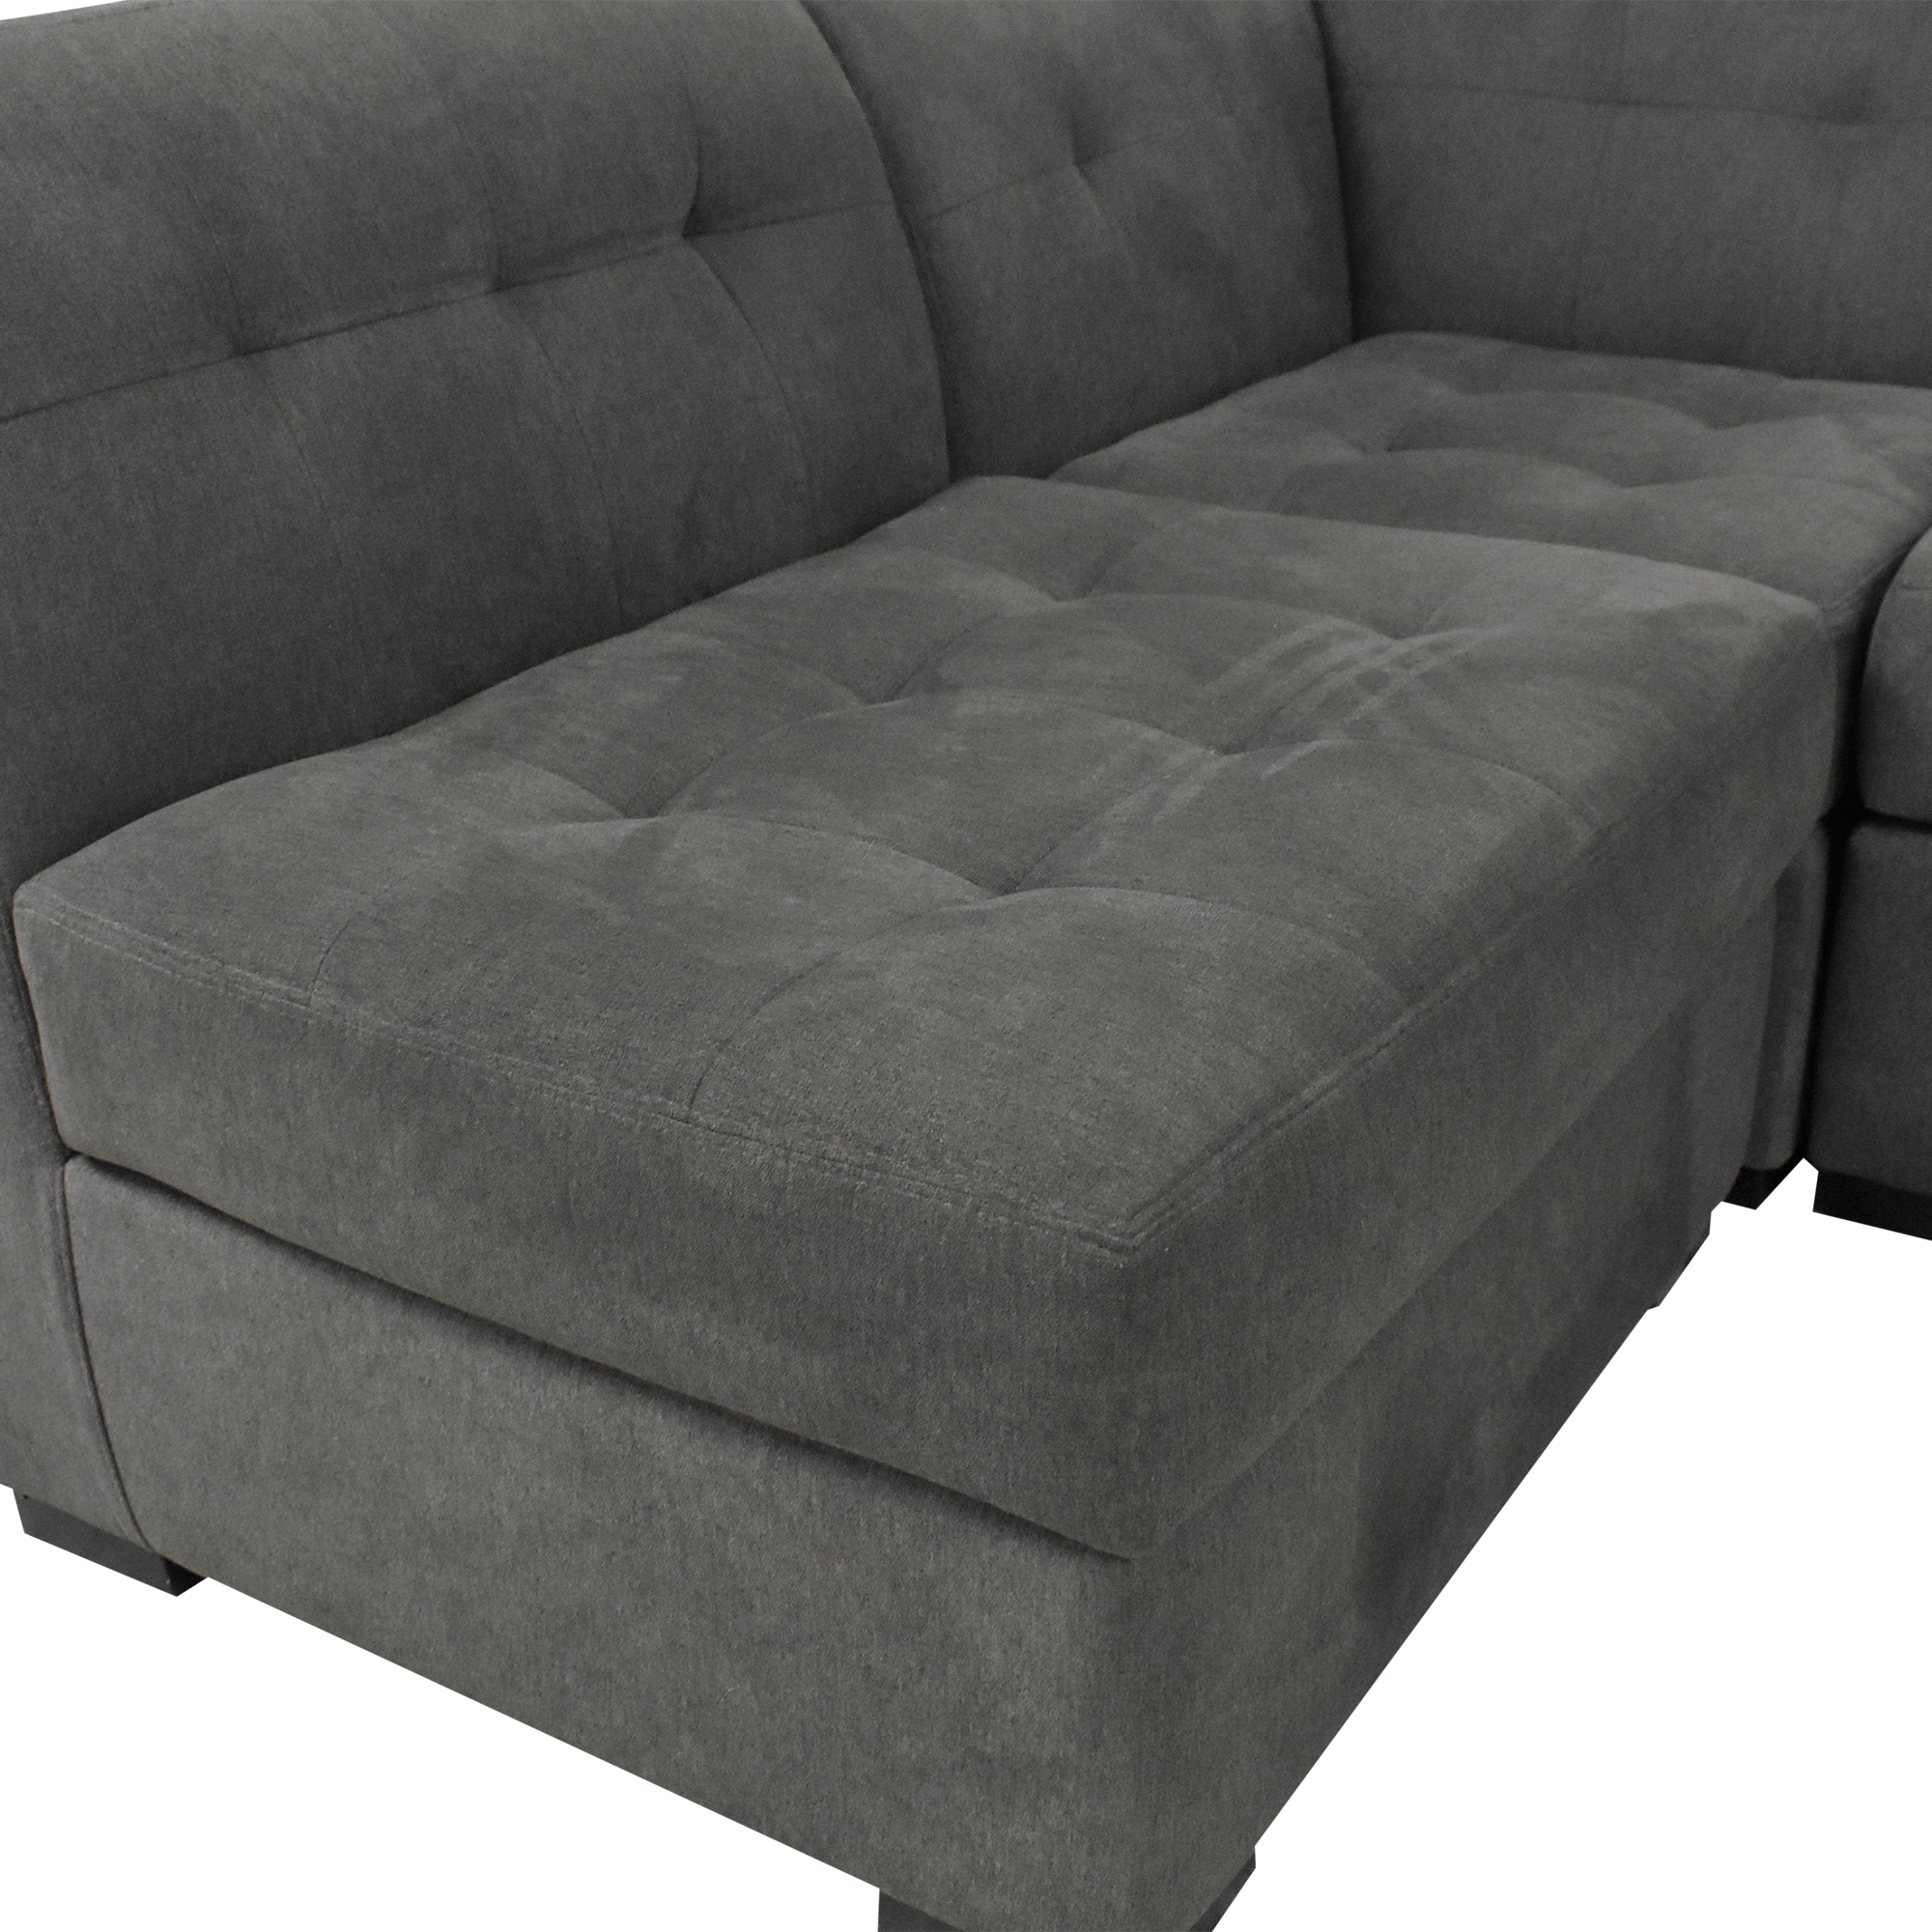 Macy's Macy's Tufted Sectional Sofa and Ottoman used